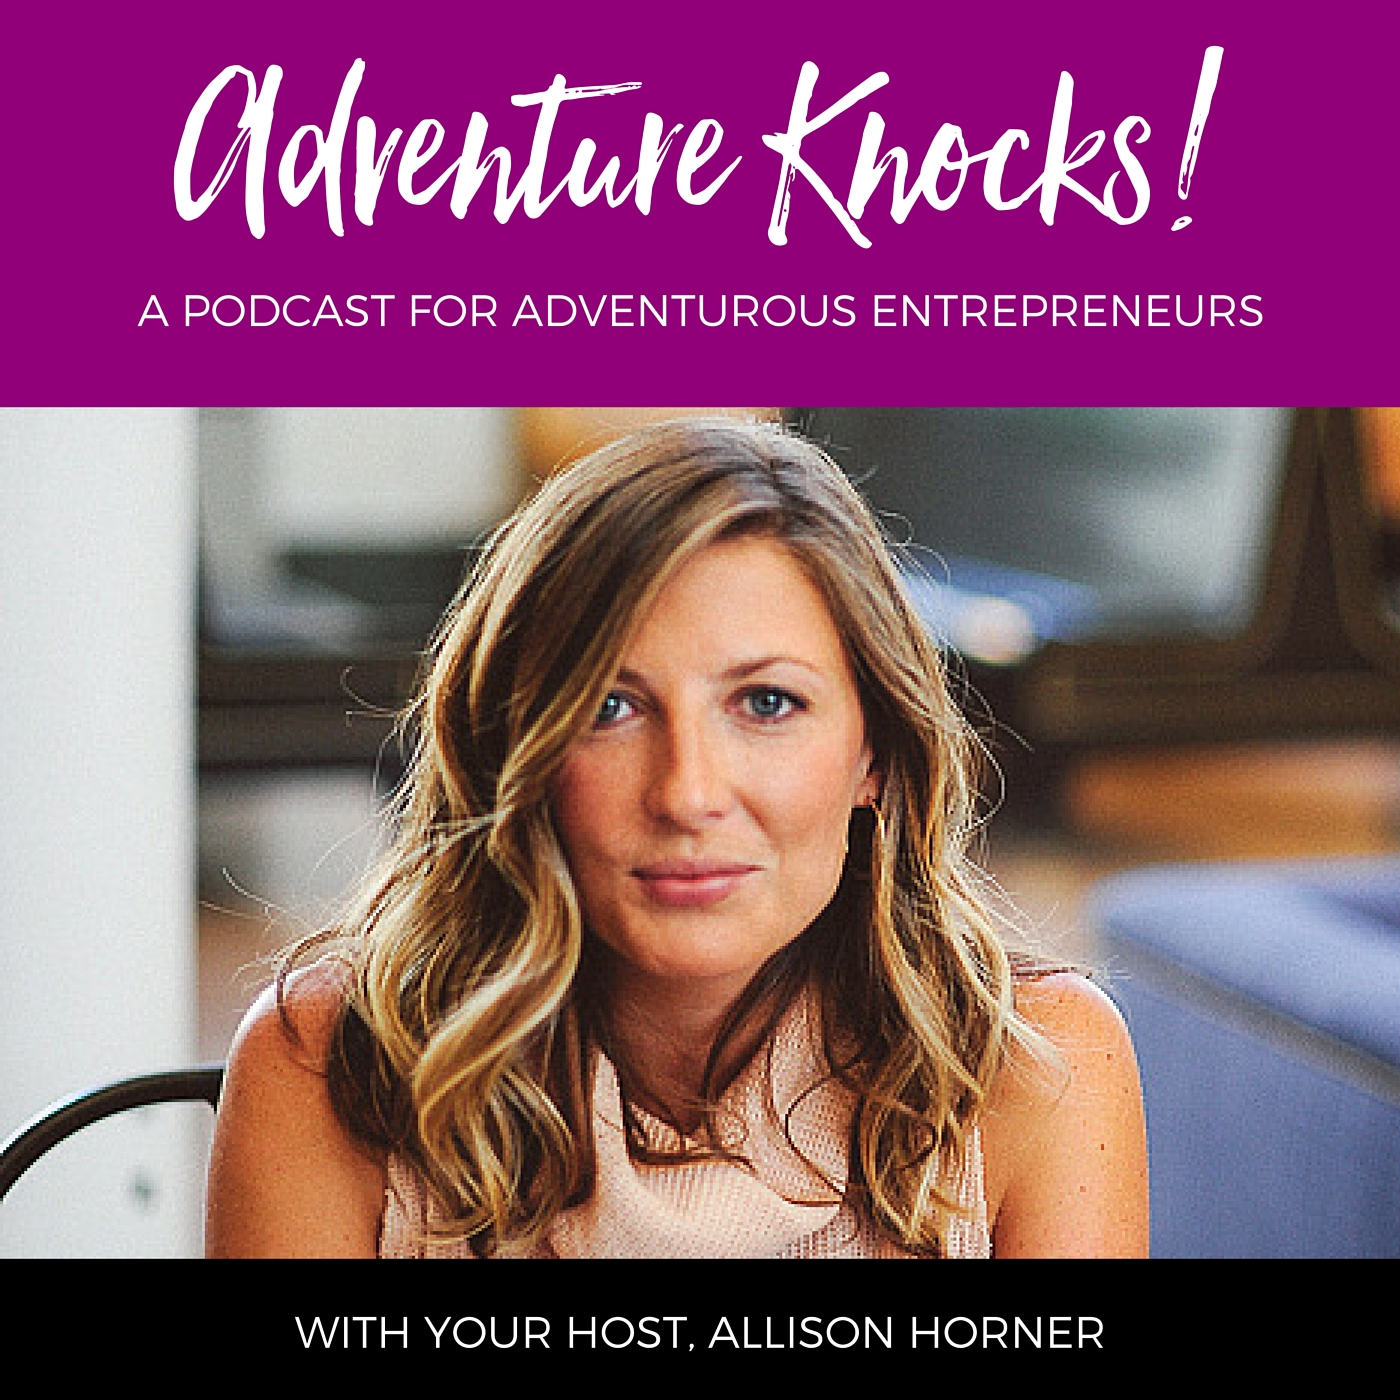 The Adventure Knocks Podcast is LIVE on iTunes! Stories, Strategy and Insight from Thriving Entrepreneurs